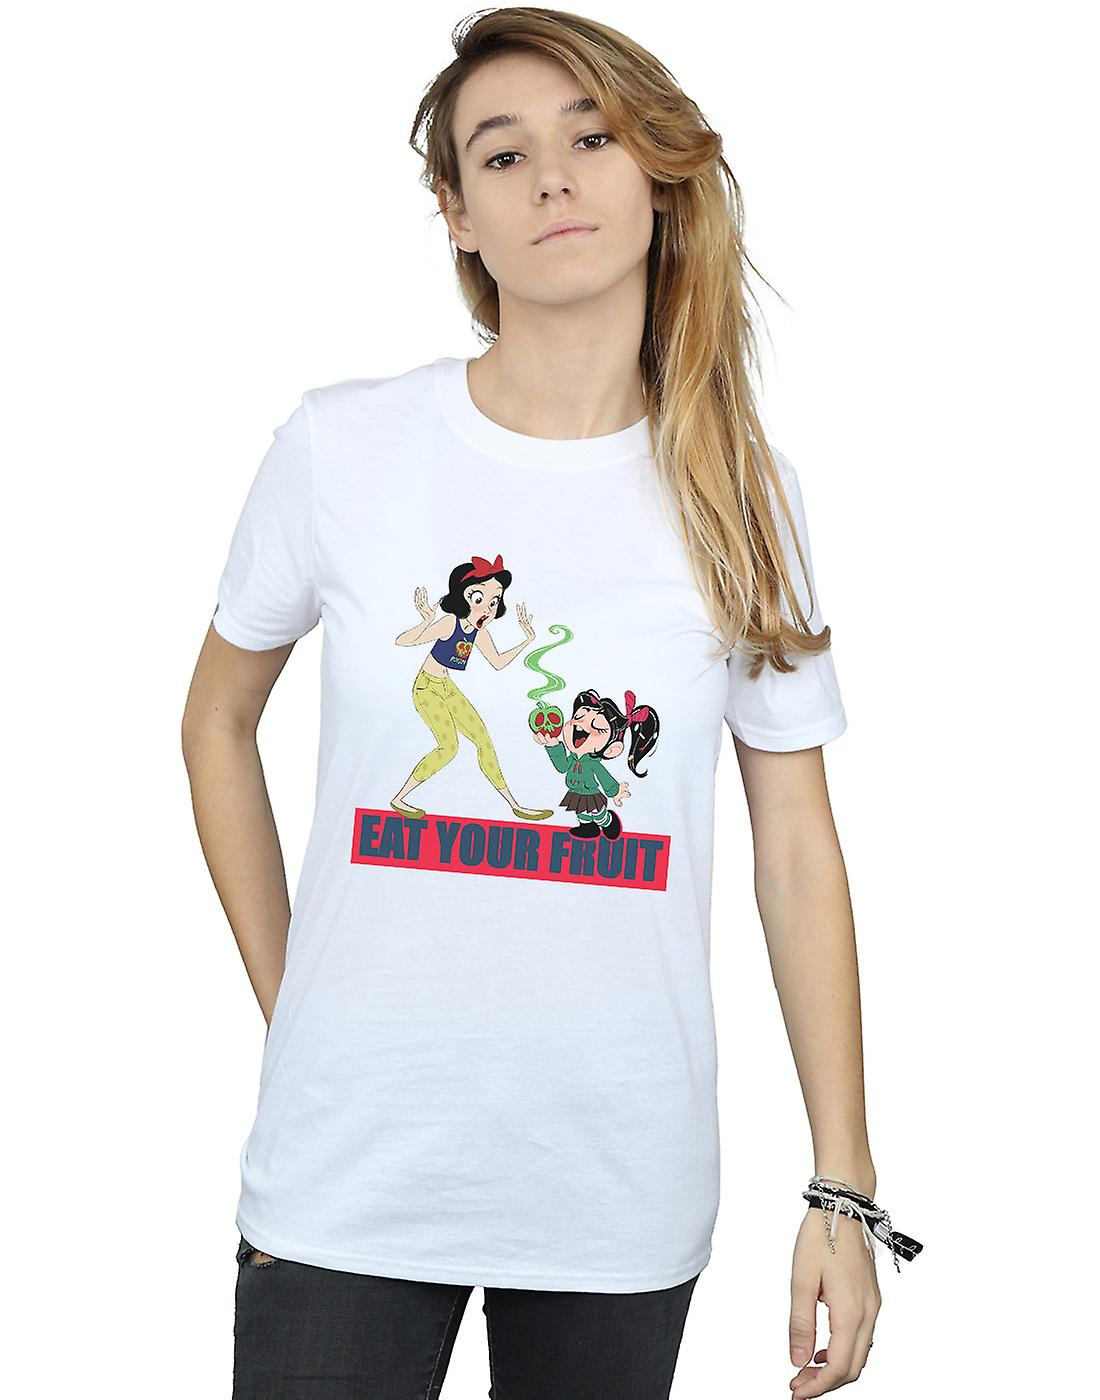 Disney Women's Wreck It Ralph Eat Your Fruit Boyfriend Fit T-Shirt